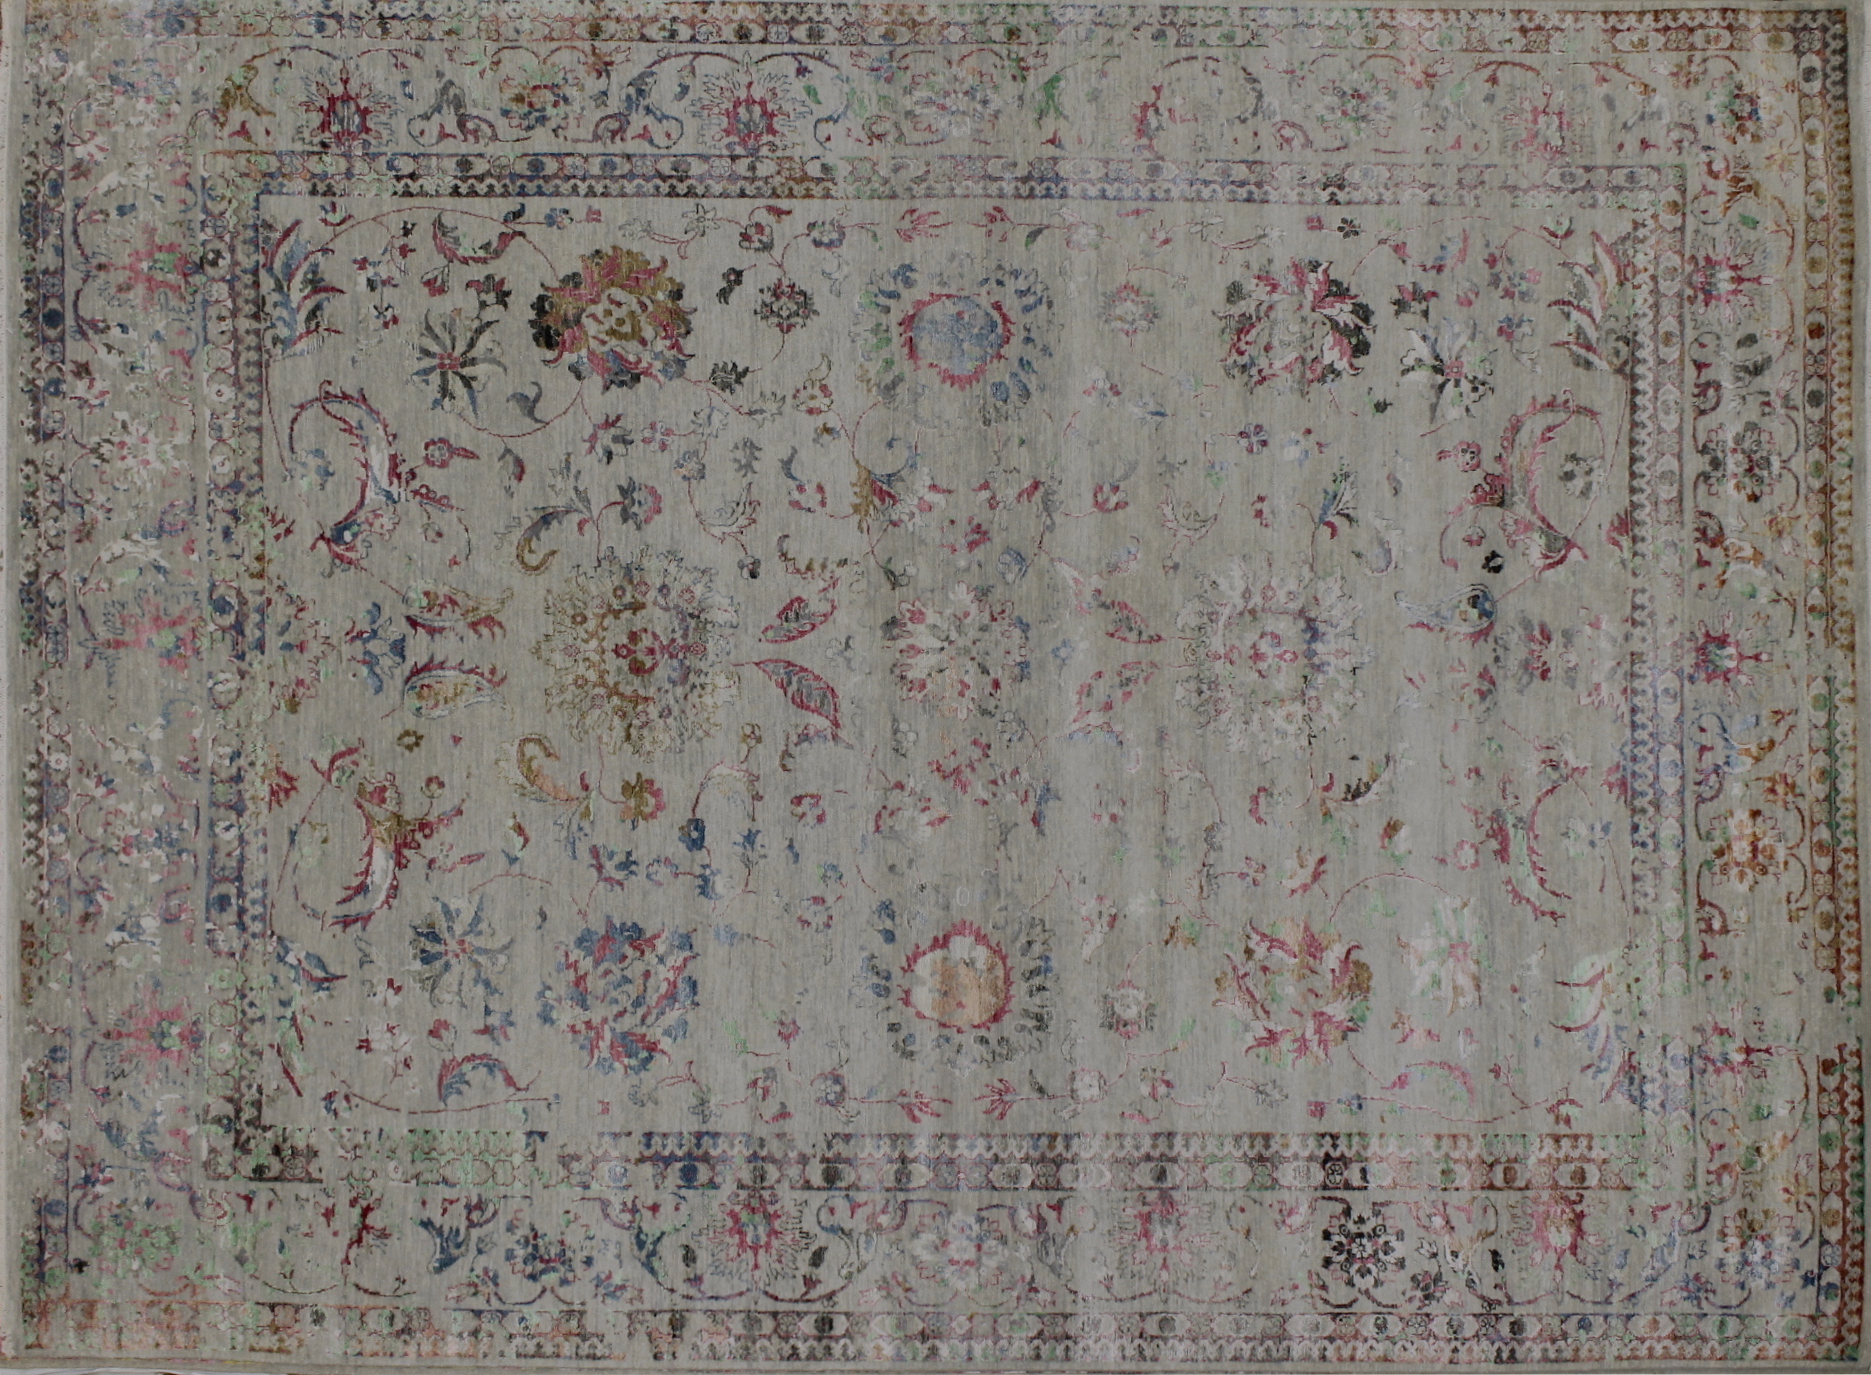 9x12 Contemporary Hand Knotted Wool Area Rug - MR022393